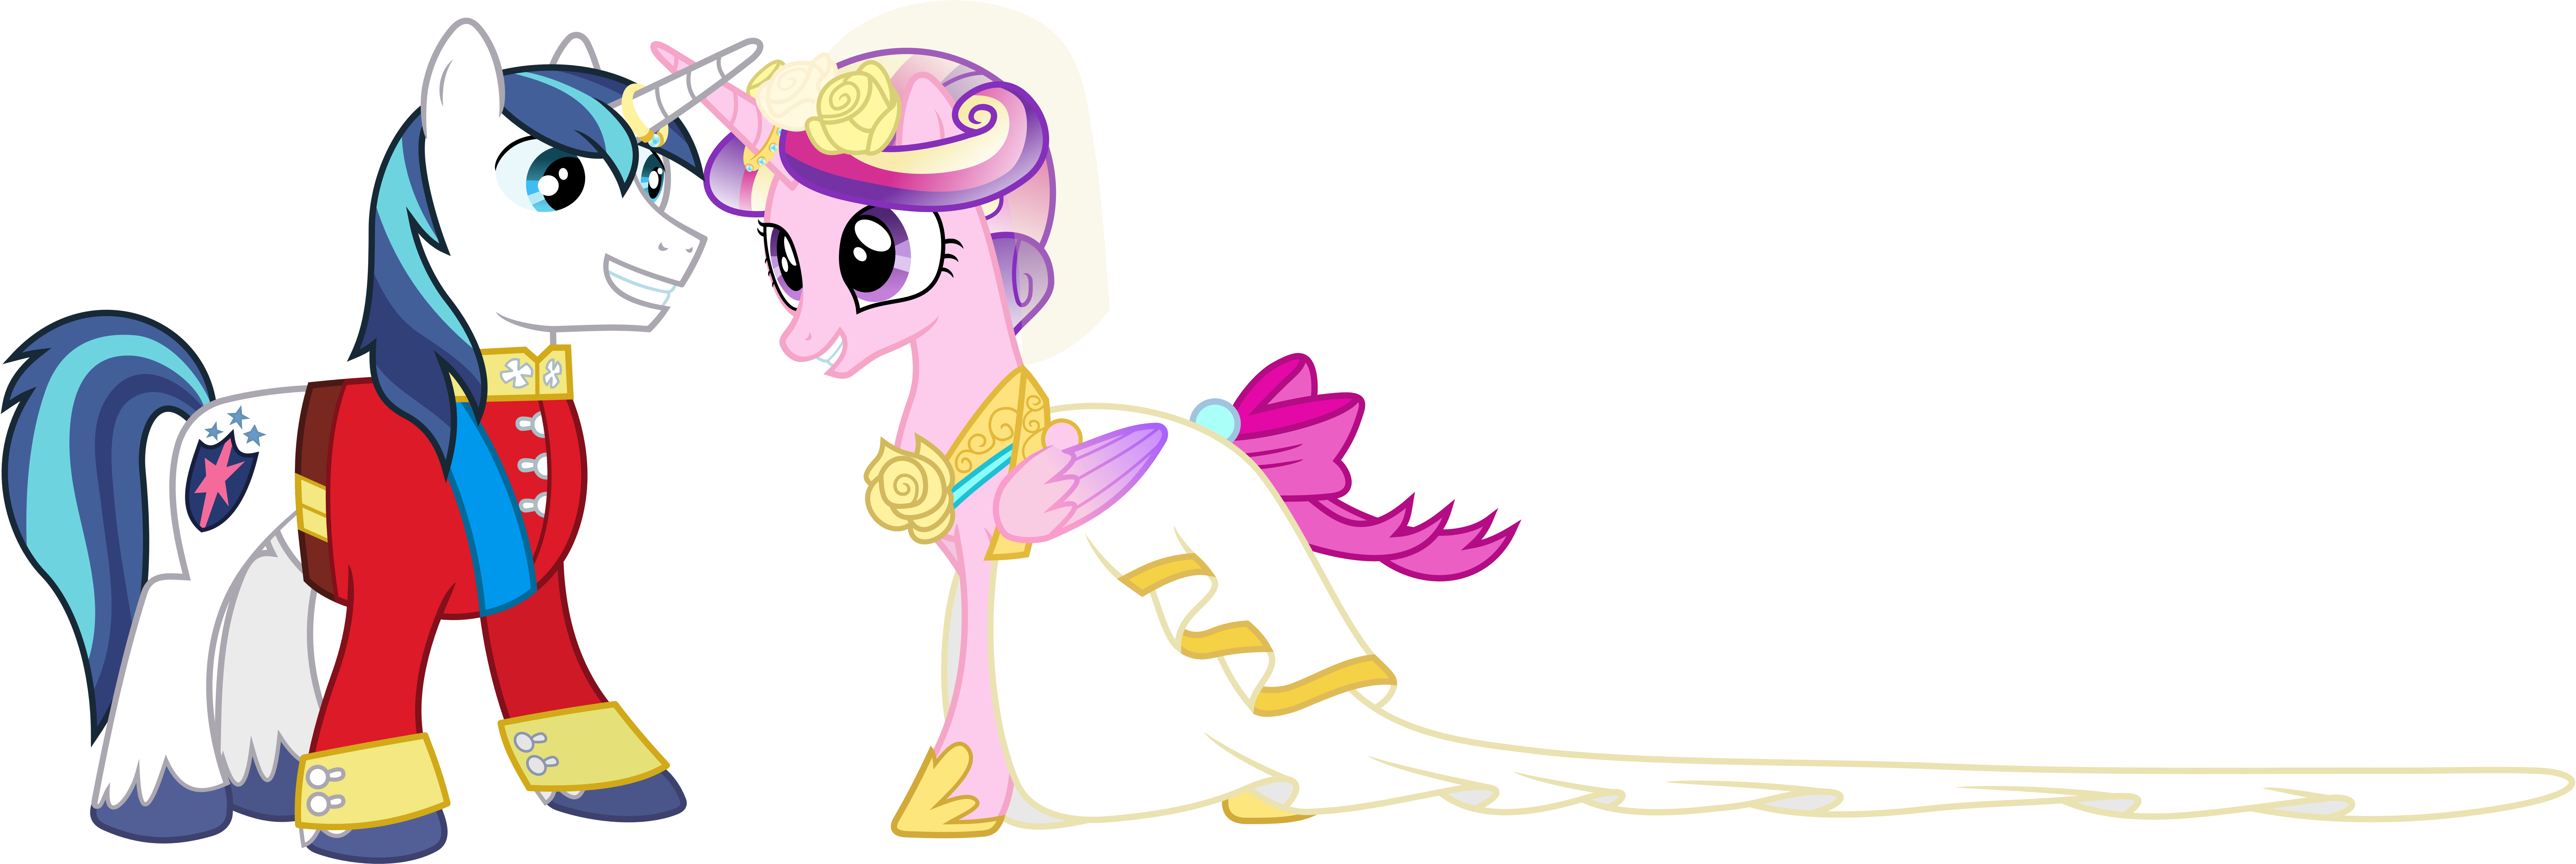 A Canterlot Wedding Images Princess Cadance And Shining Armour Dancing Hd Wallpaper Background Photos: Canterlot Wedding Cadence Dress Princess Wedding At Websimilar.org